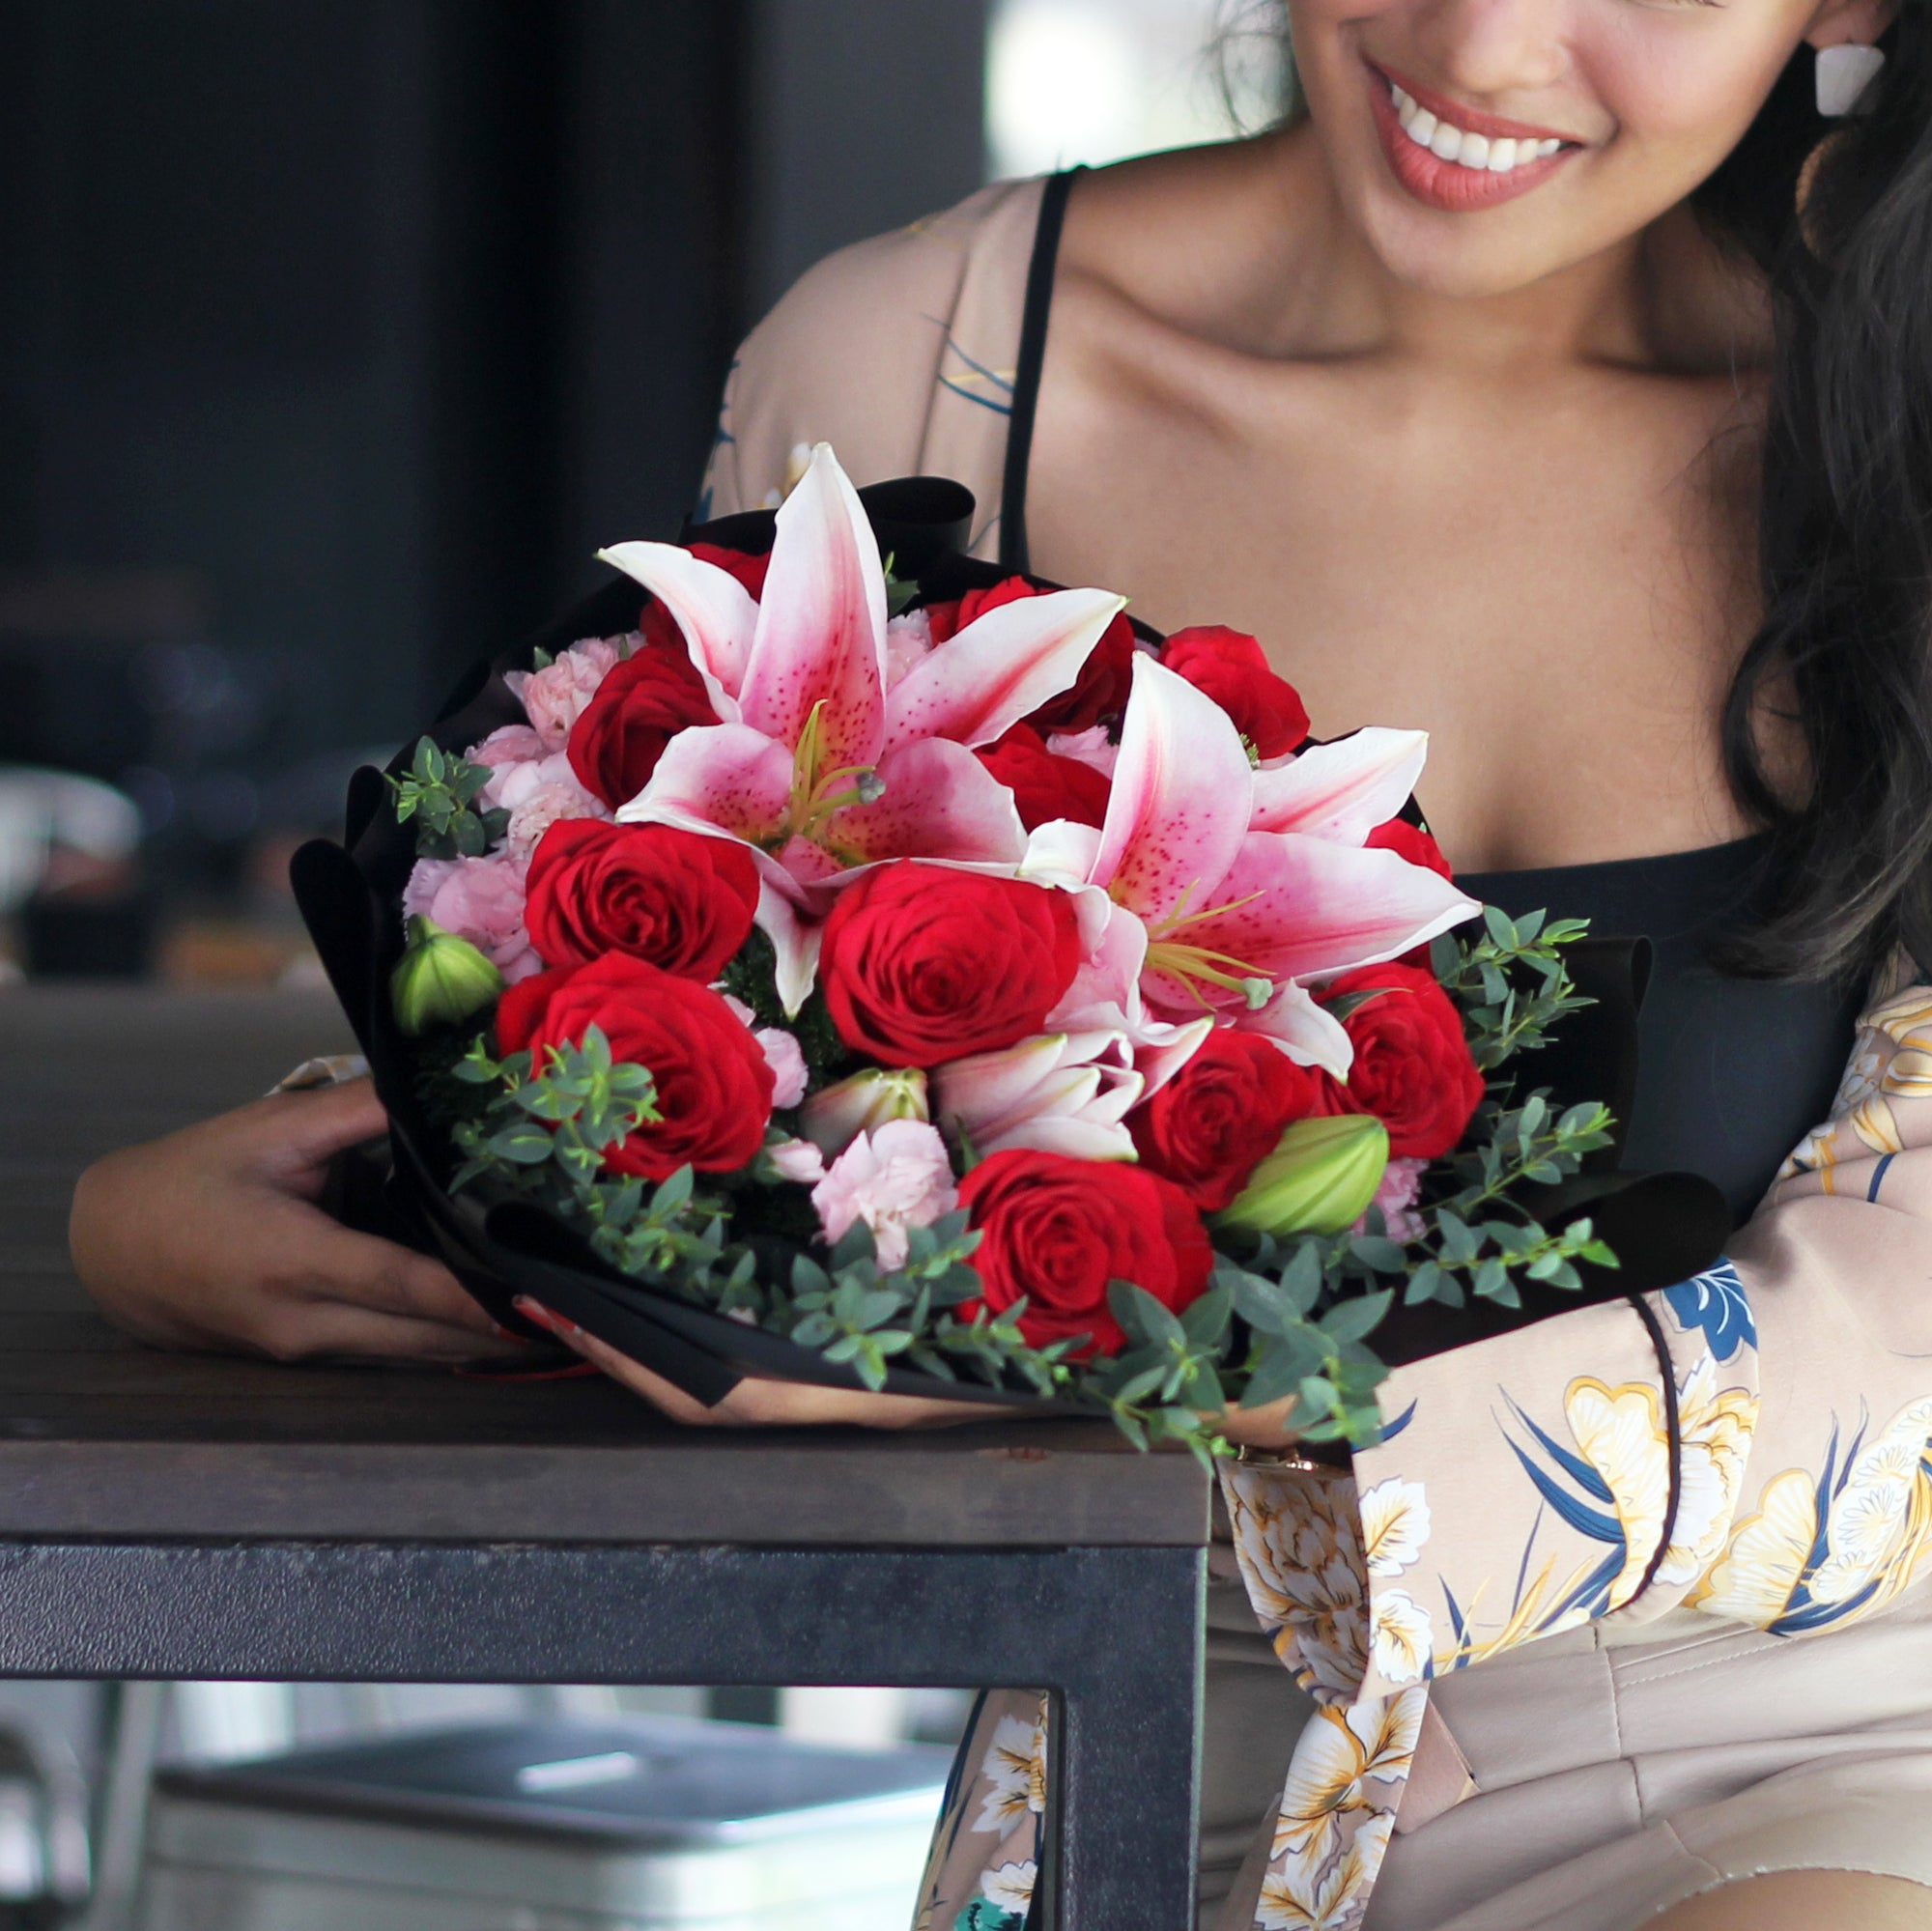 Why Gifting Flowers Will Never Run Out of Style